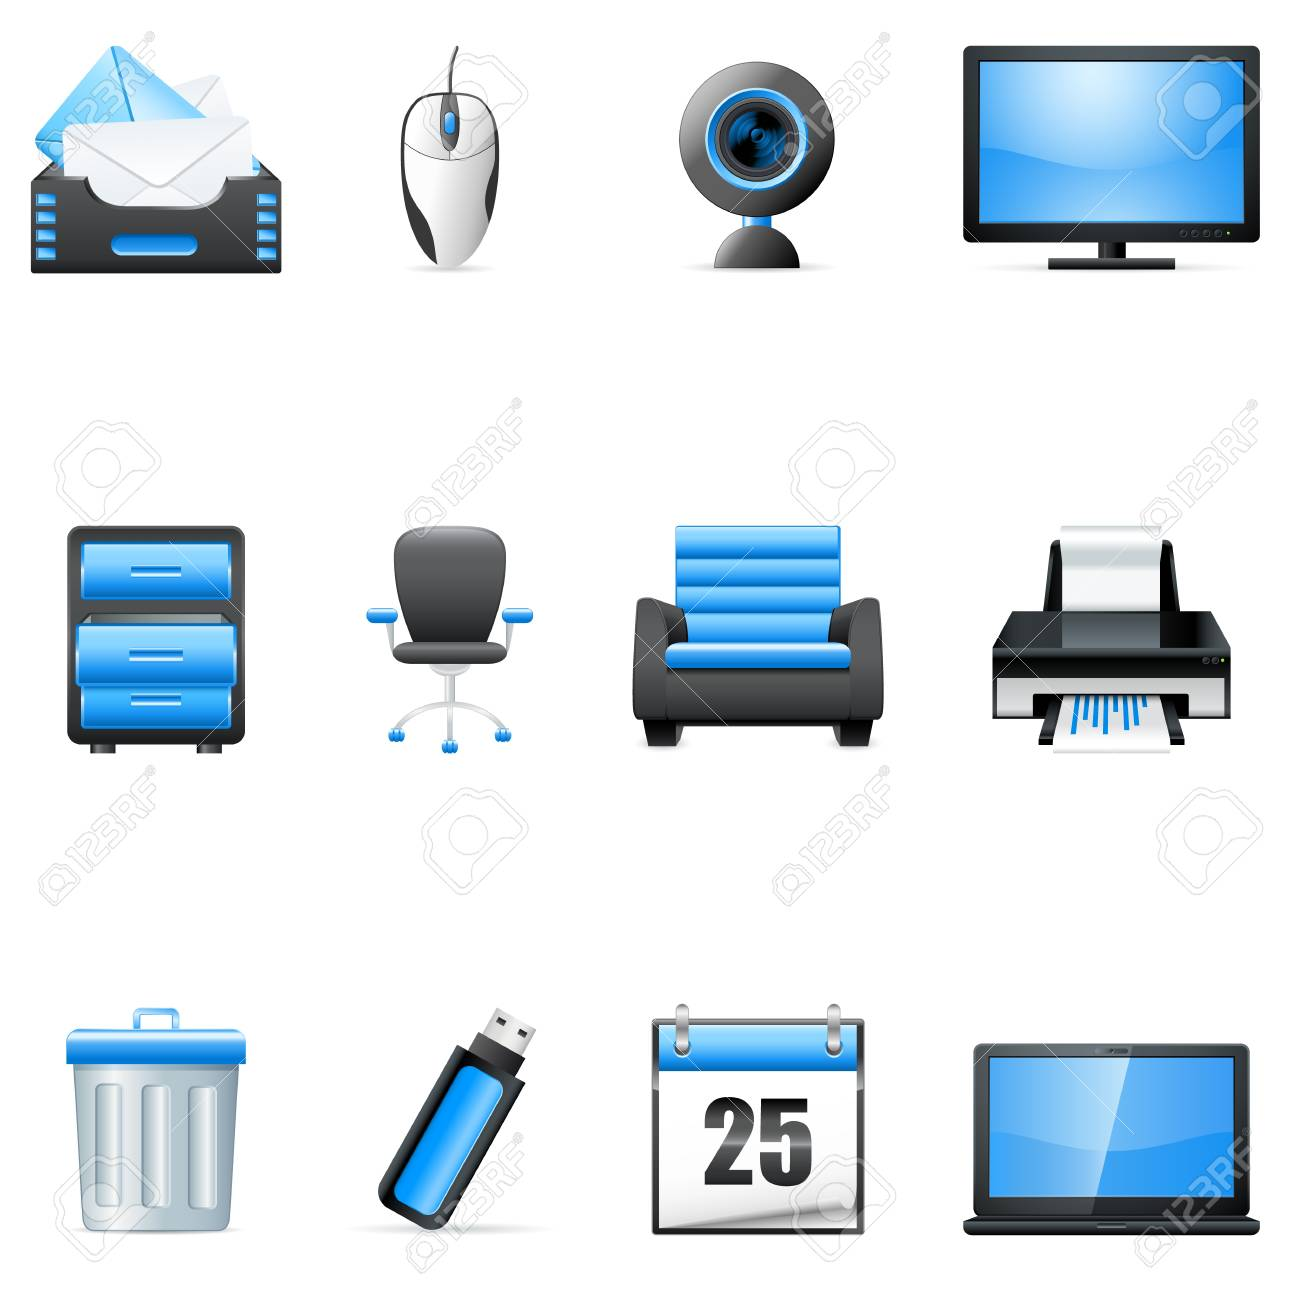 business and technology icons Stock Vector - 18004250